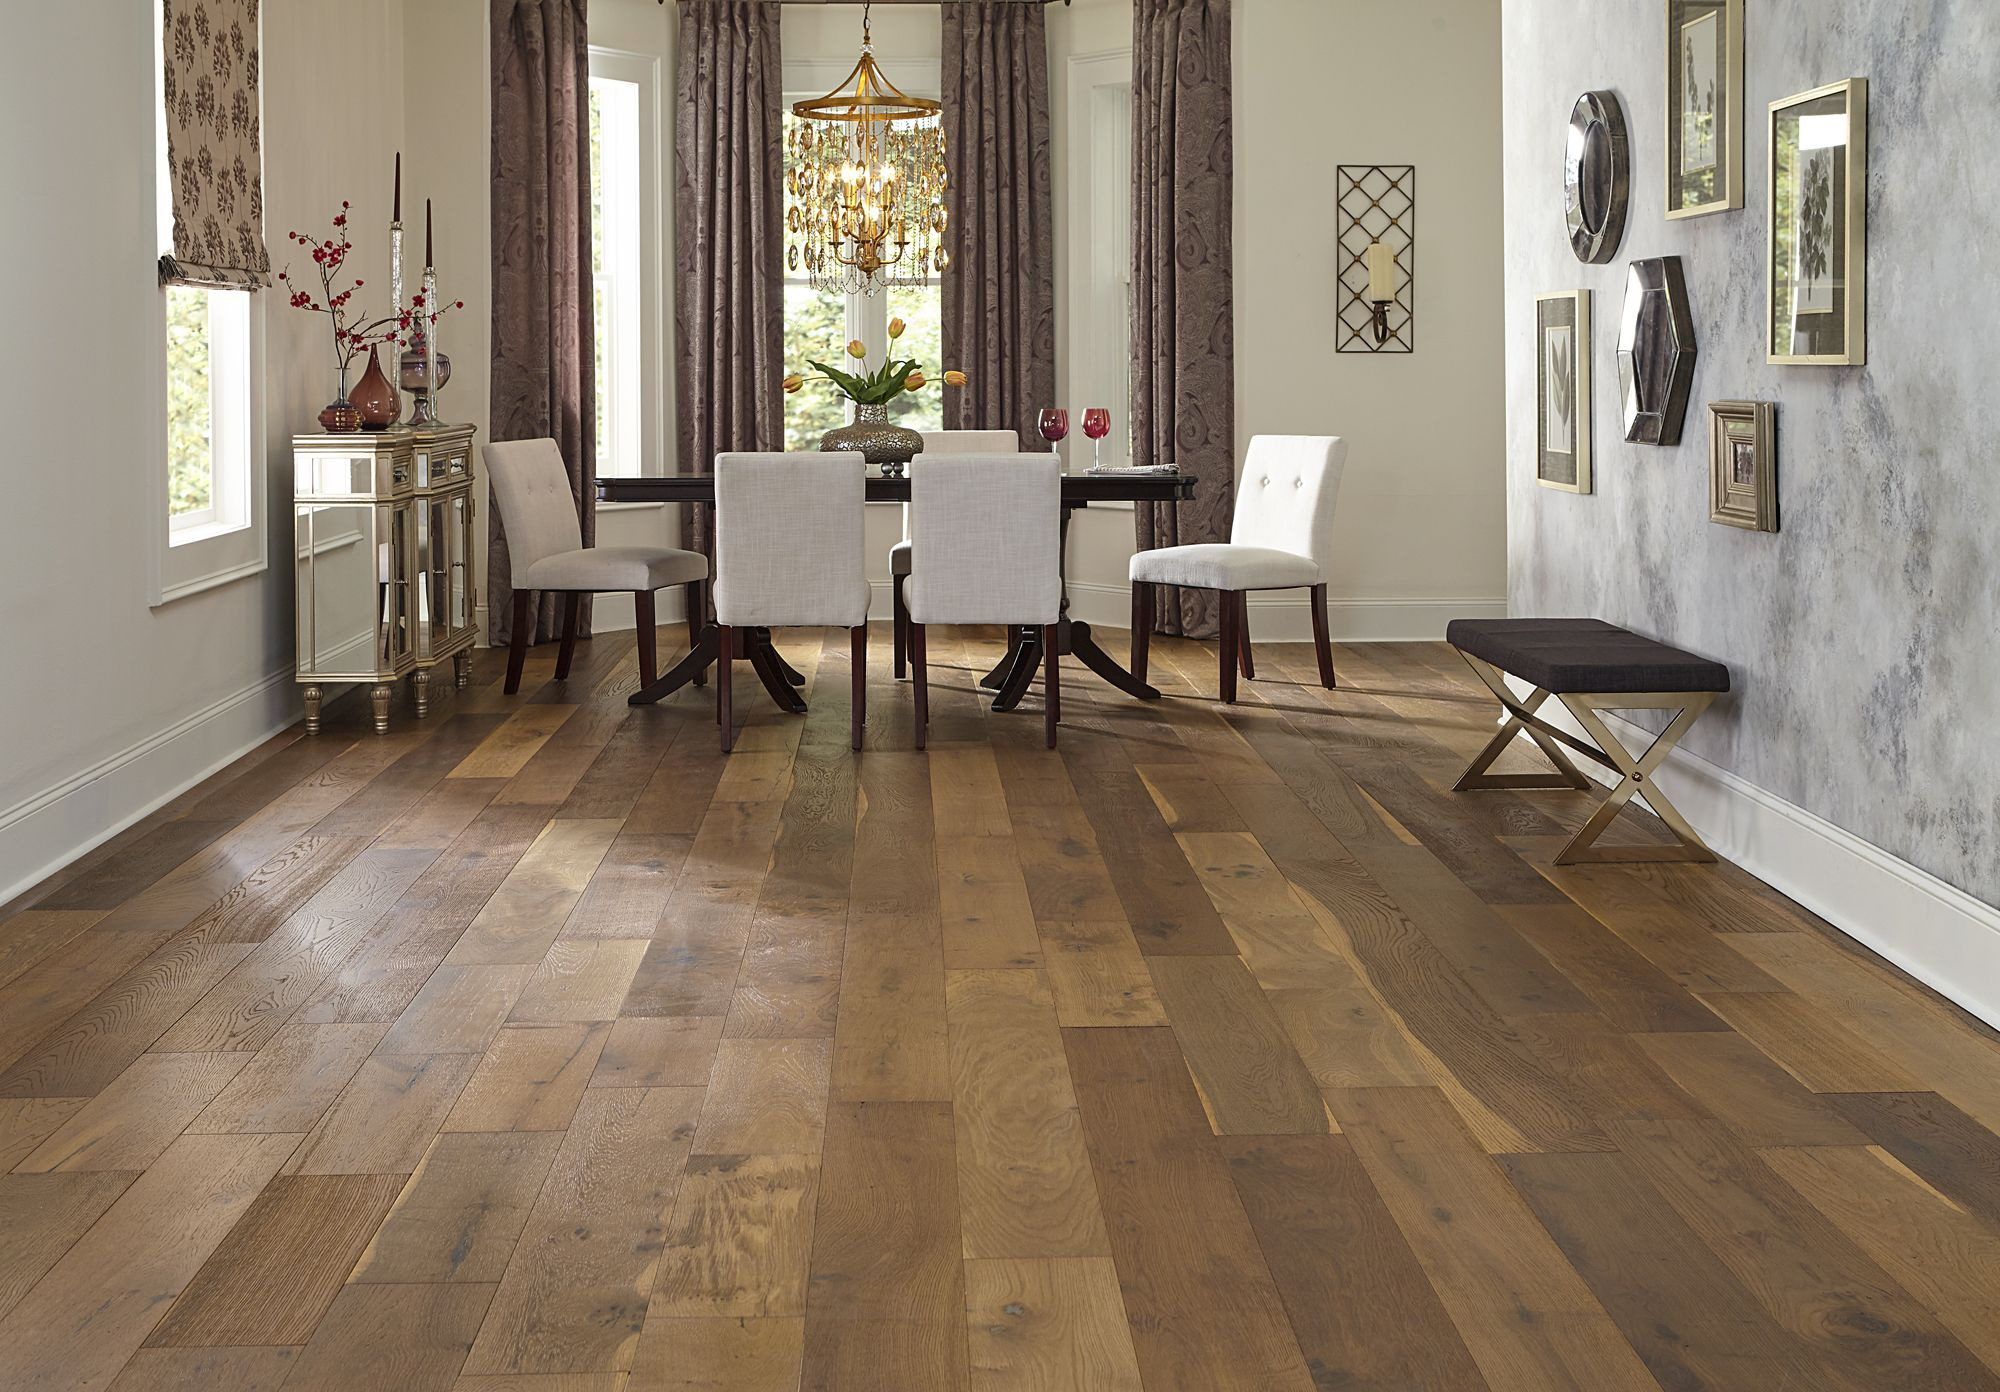 hardwood flooring hamilton ontario canada of 7 1 2 wide planks and a rustic look bellawood willow manor oak has with regard to 7 1 2 wide planks and a rustic look bellawood willow manor oak has a storied old world appearance